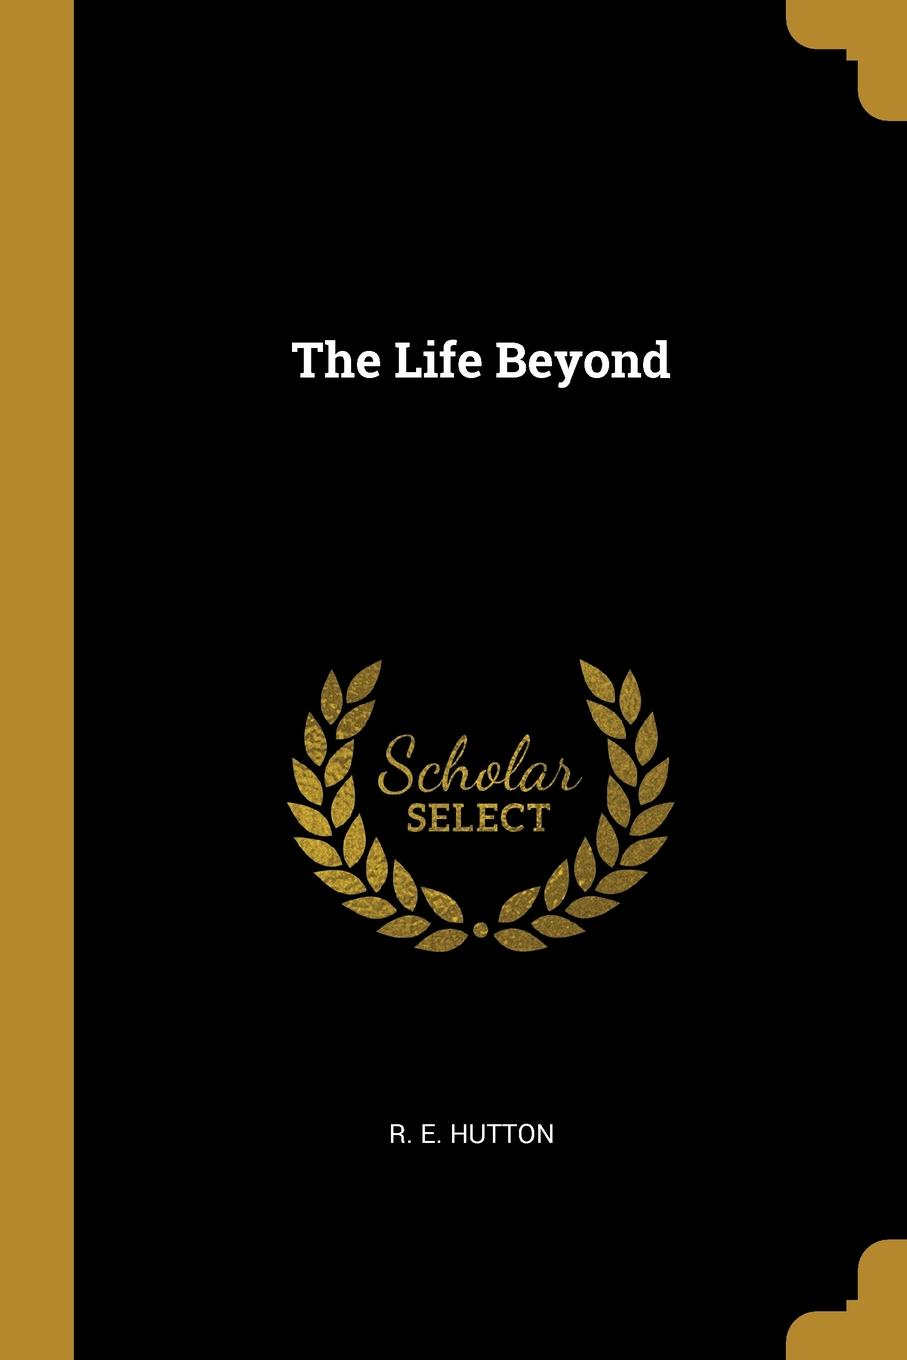 R. E. Hutton. The Life Beyond